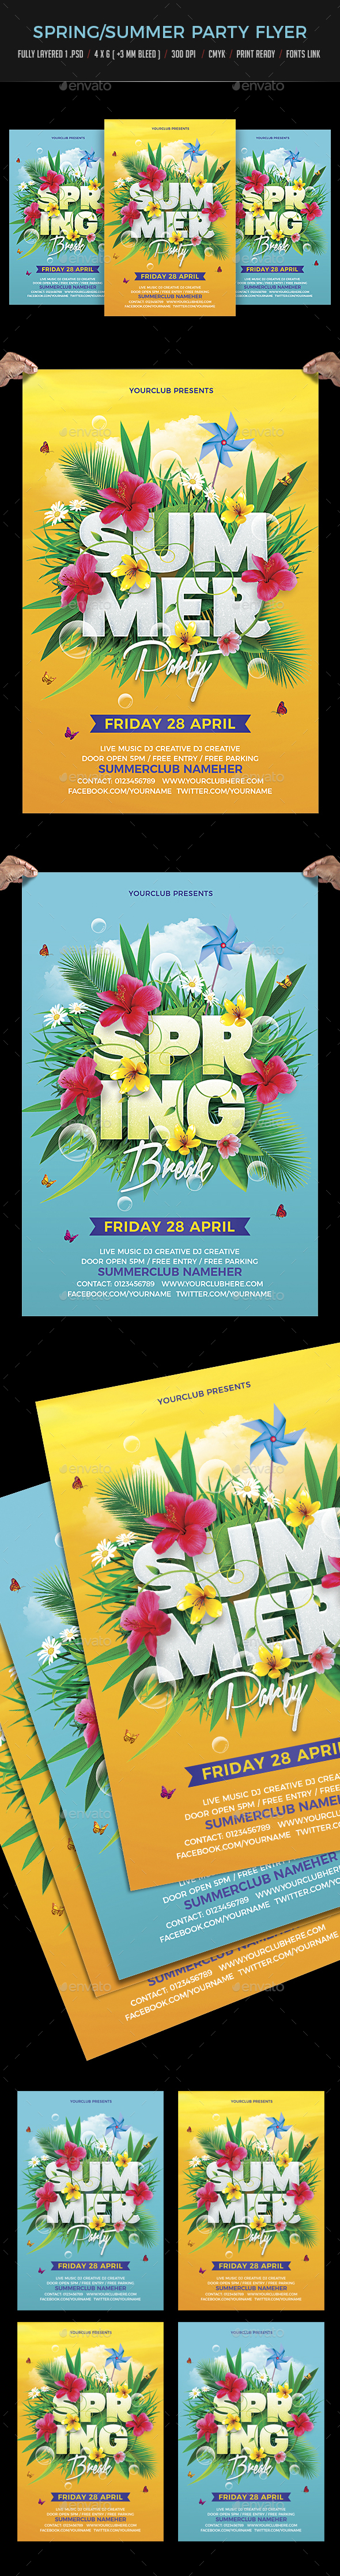 Spring Summer Party Flyer - Clubs & Parties Events